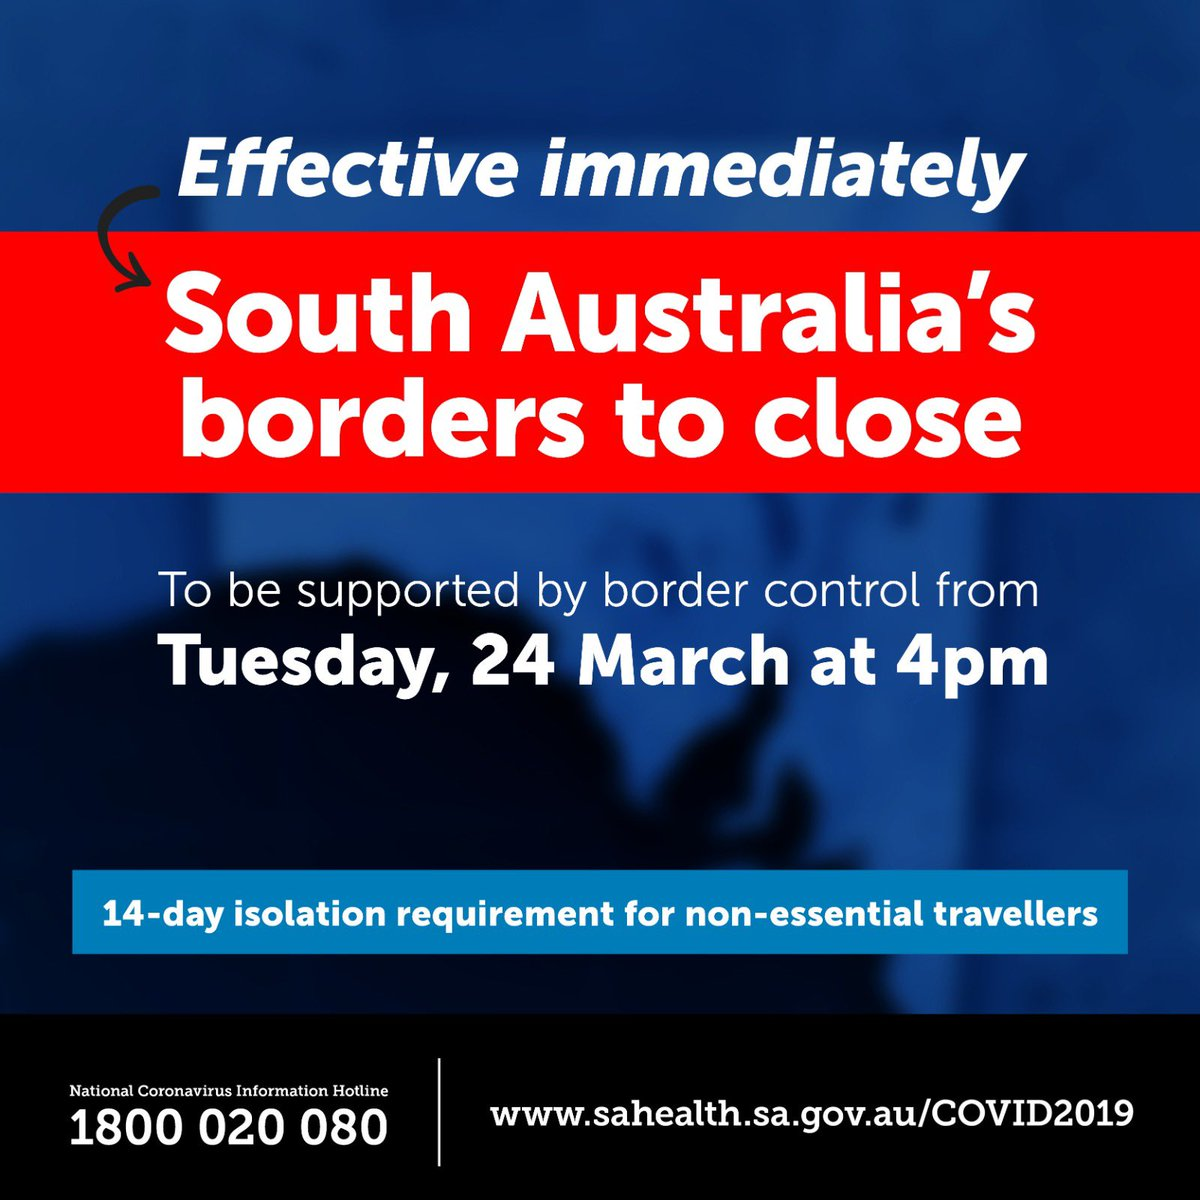 """Steven Marshall, MP on Twitter: """"We've taken decisive action to close South  Australia's borders and extend isolation requirements for non-essential  travellers. These measures will help slow the spread of #coronavirus in  #SouthAustralia"""